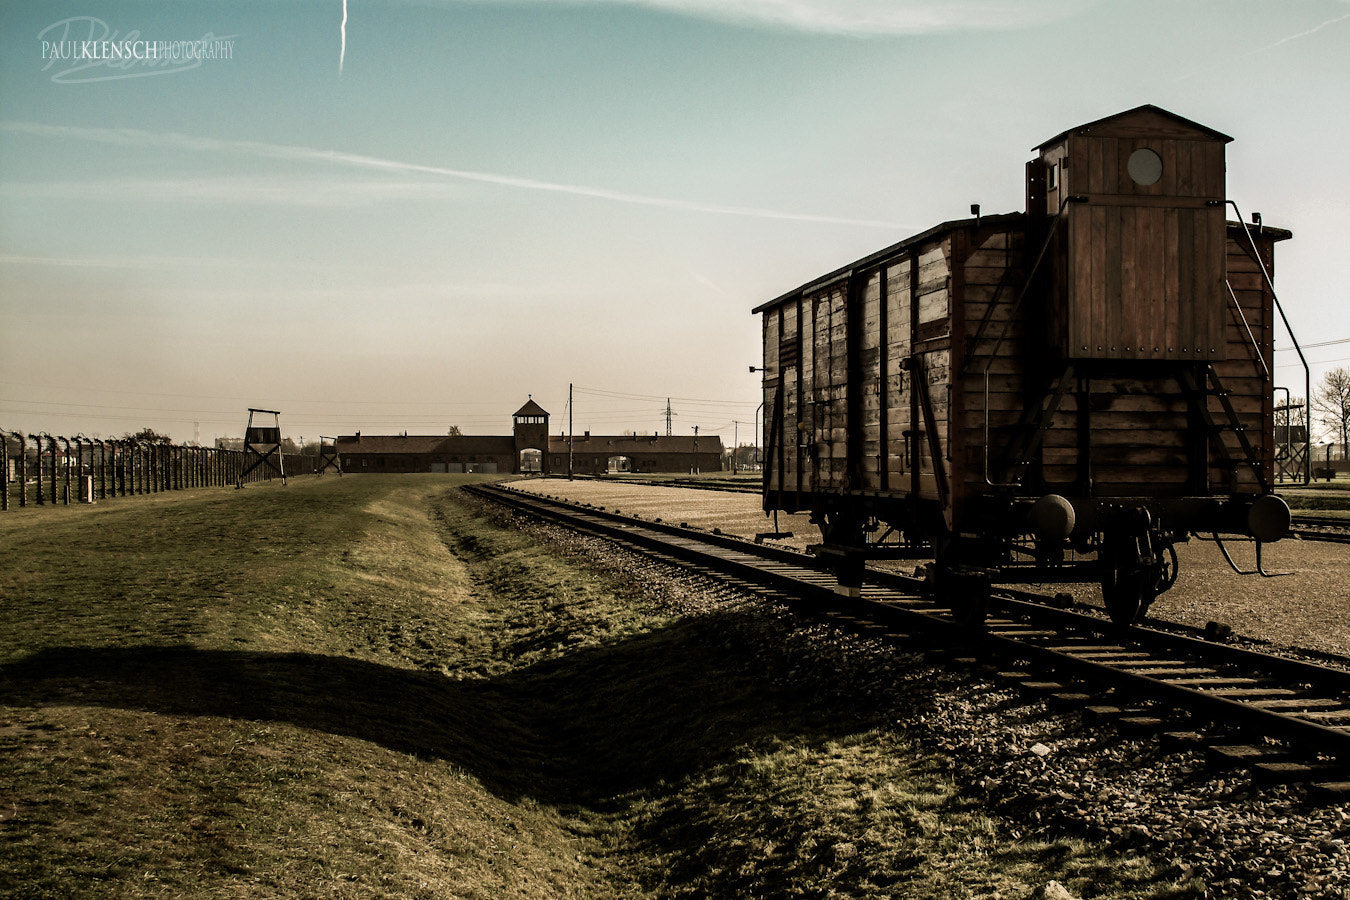 Photograph Auschwitz! The aftermath...? by Paul Klensch on 500px